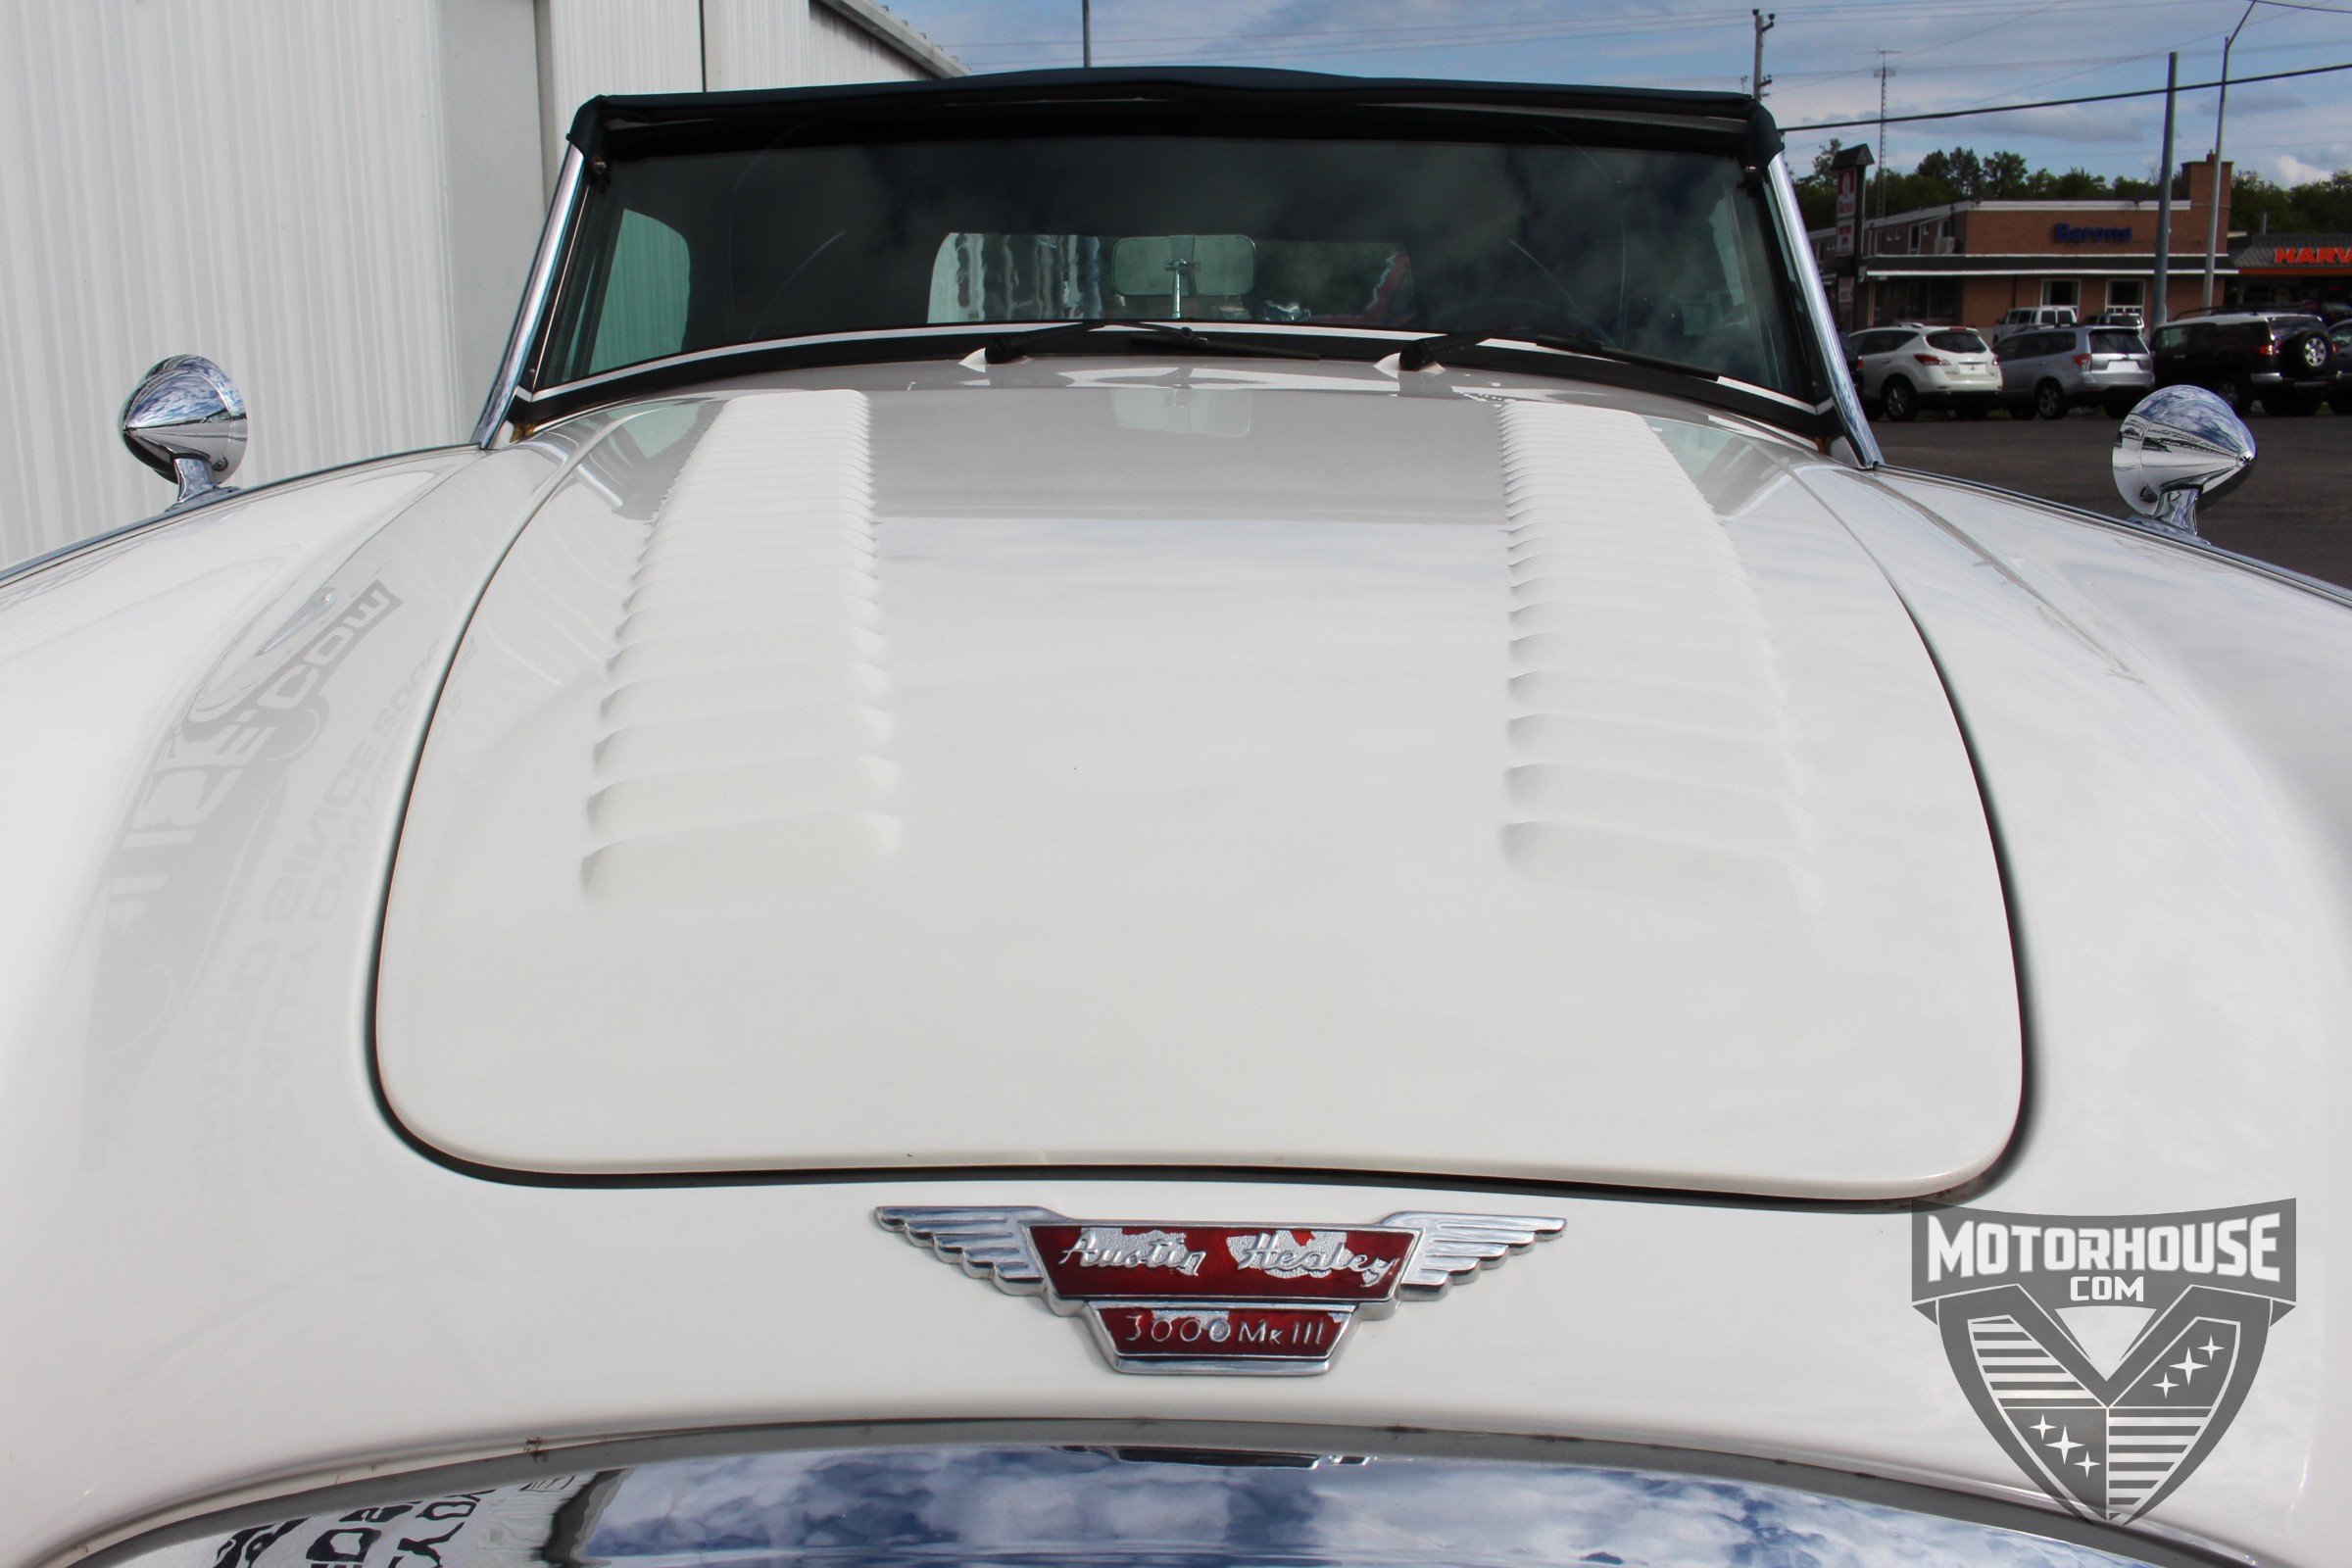 1965 Austin-Healey 3000Z Convertable (Stk: 1375) in Carleton Place - Image 15 of 48